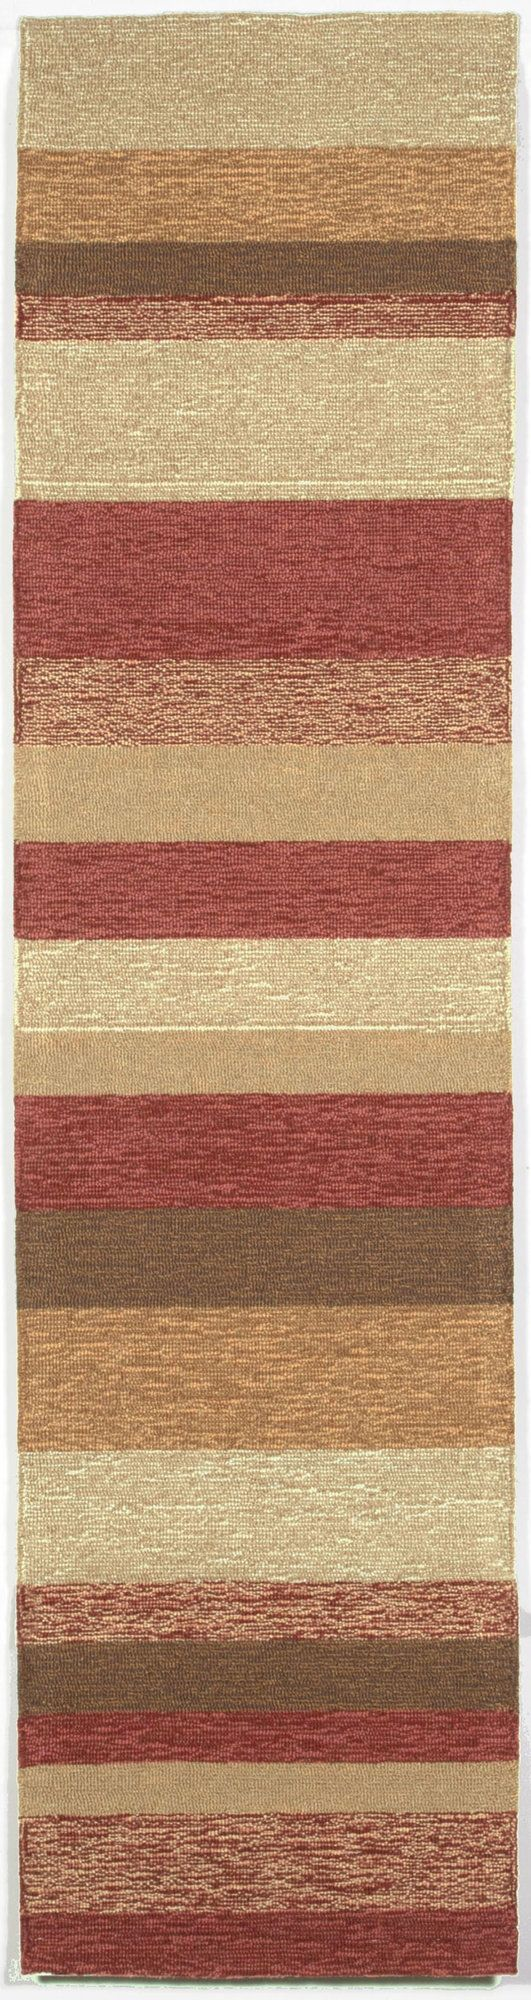 Cali Red Stripe Outdoor Rug